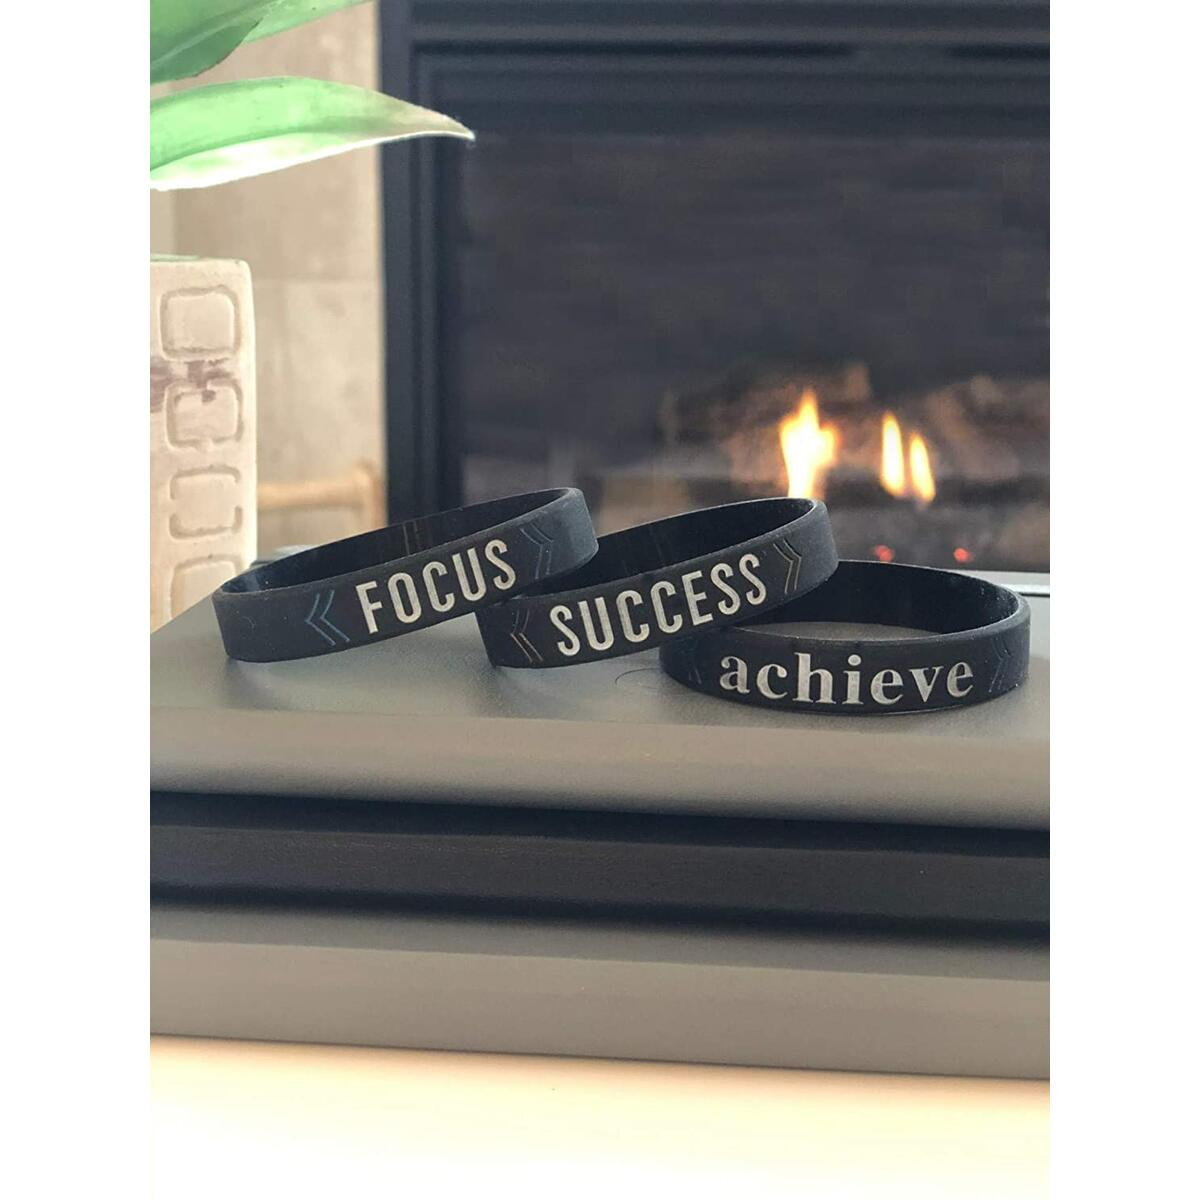 Motivational Silicone Wristband Bracelets for Men Women Teens with Inspirational messages - SUCCESS / ACHIEVE / FOCUS - Unisex Size 6-Pack